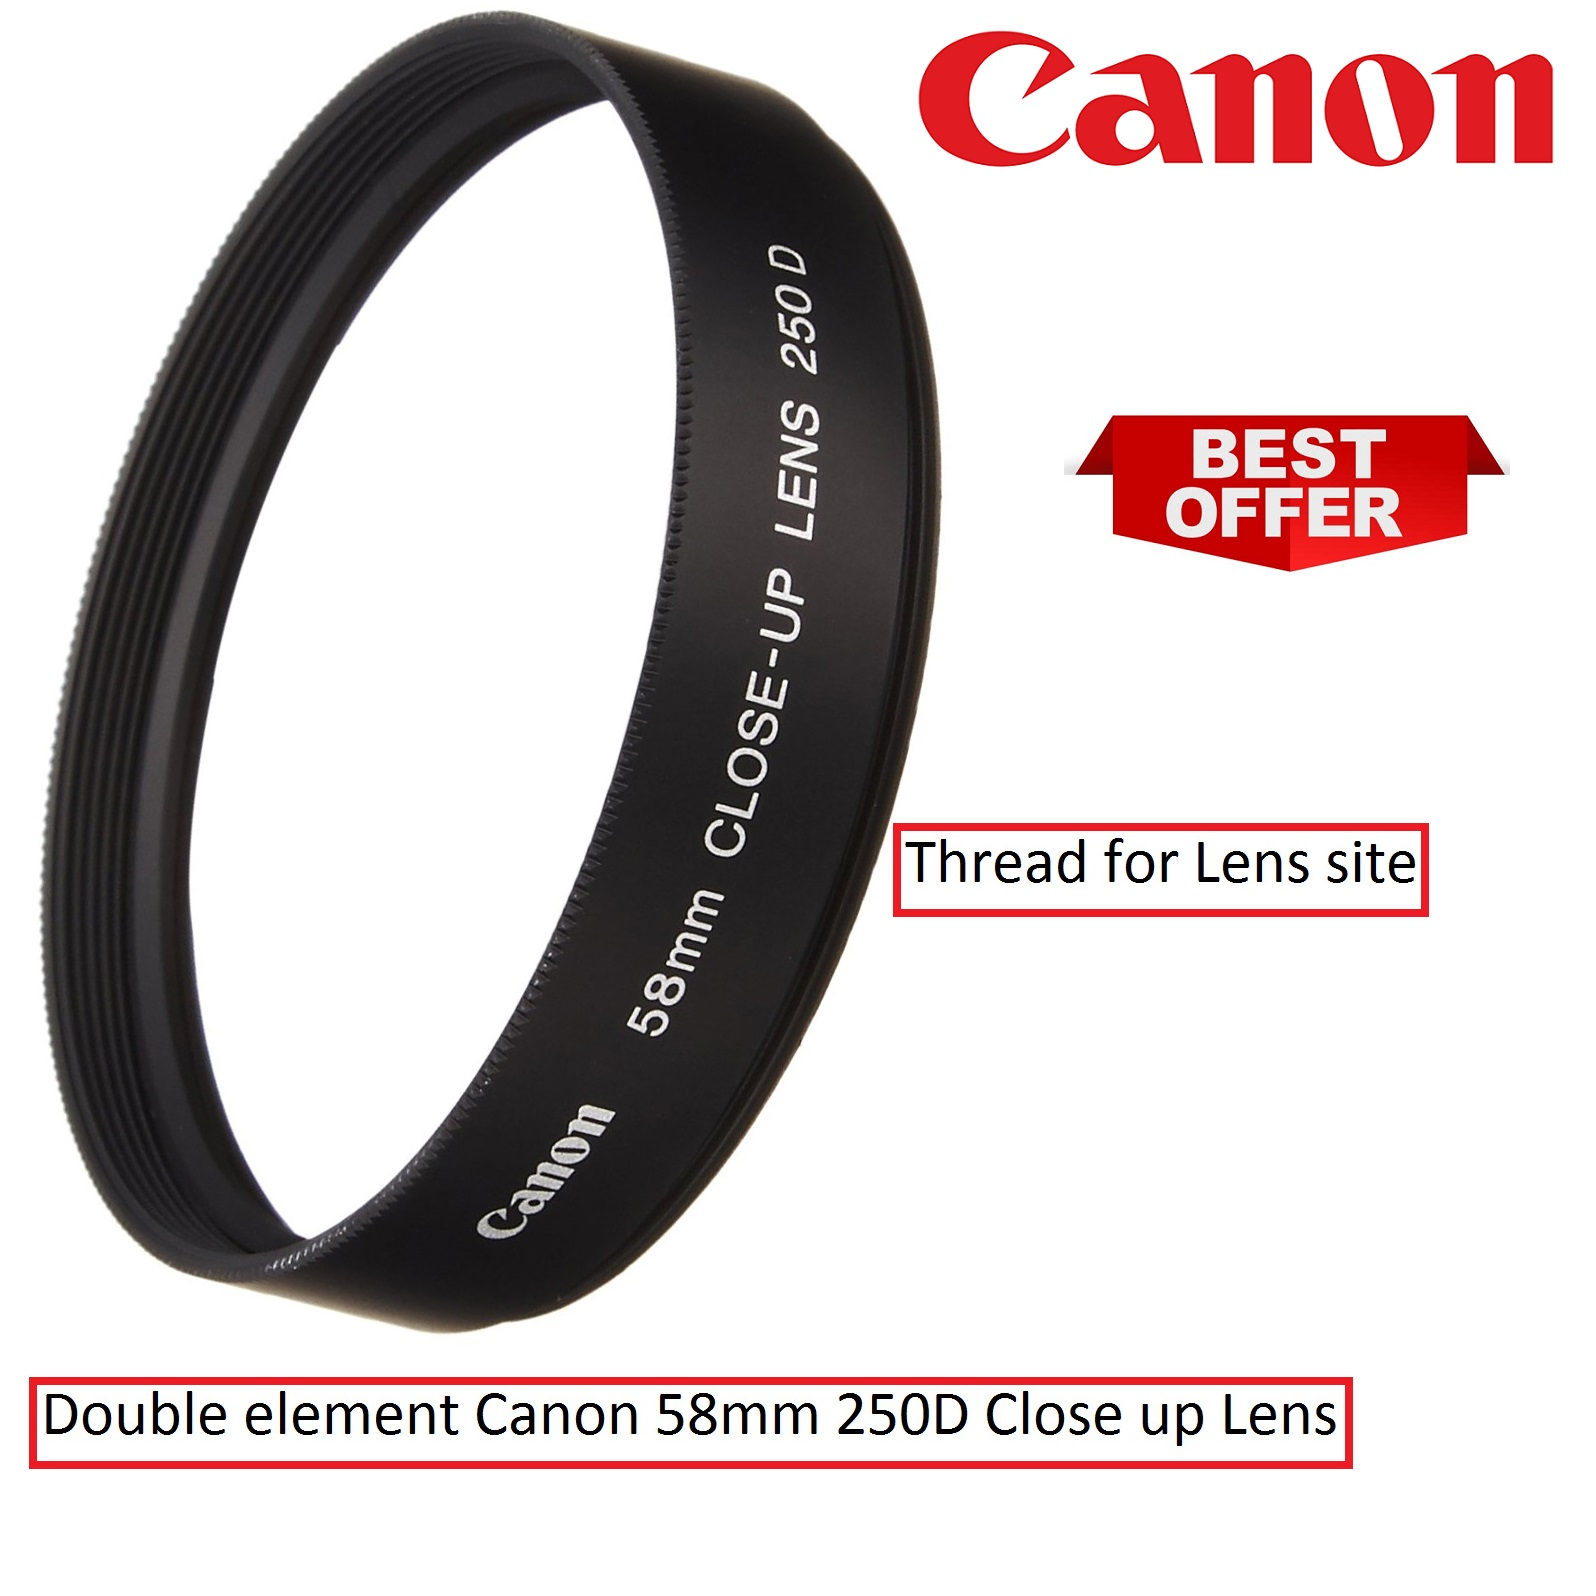 Canon 58mm Type 250D Close-Up Lens